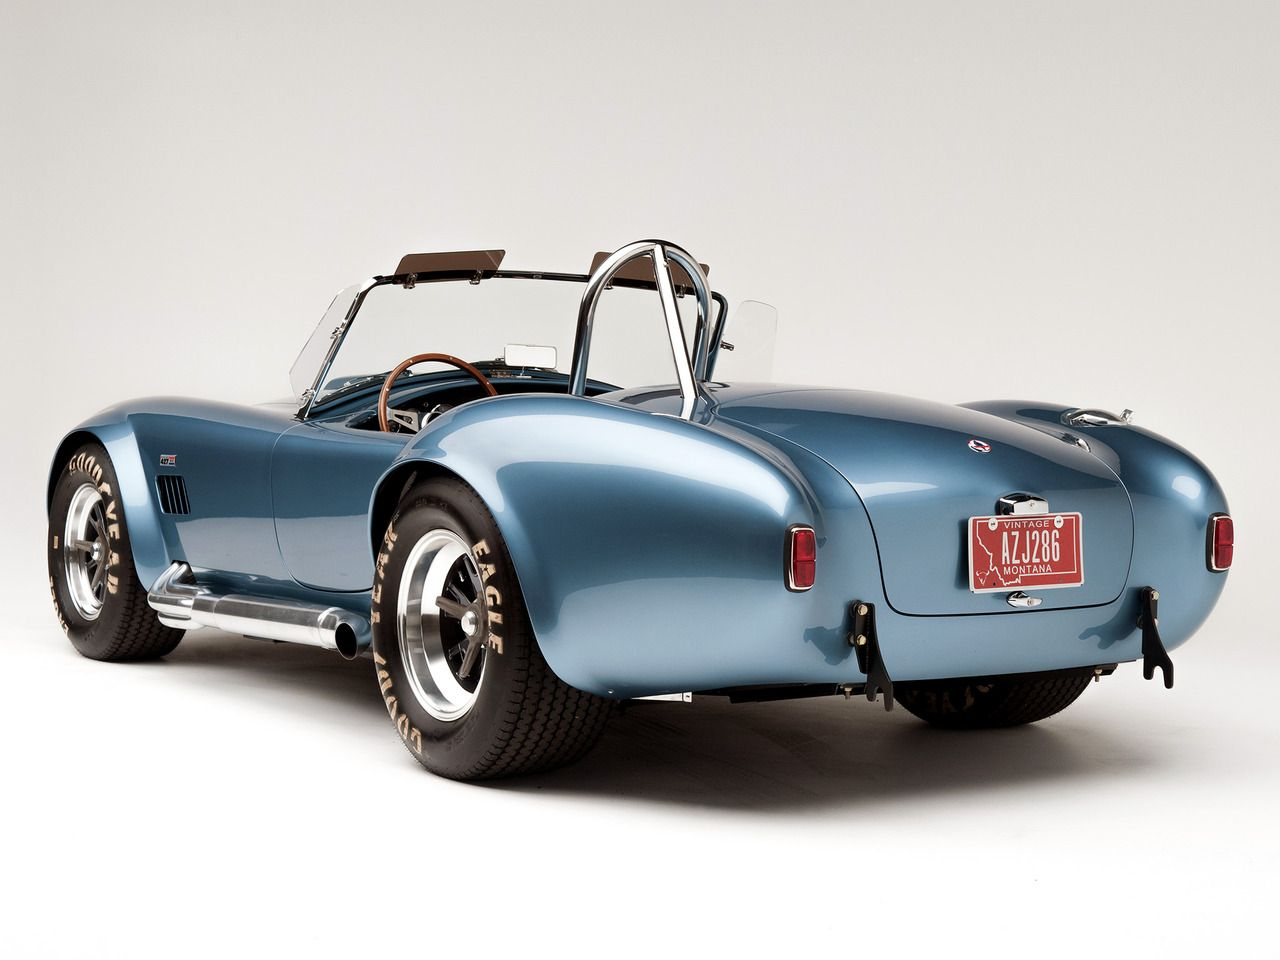 Shelby Cobra CSX Roadster Cool Cars Pinterest - Cool cars under 6000